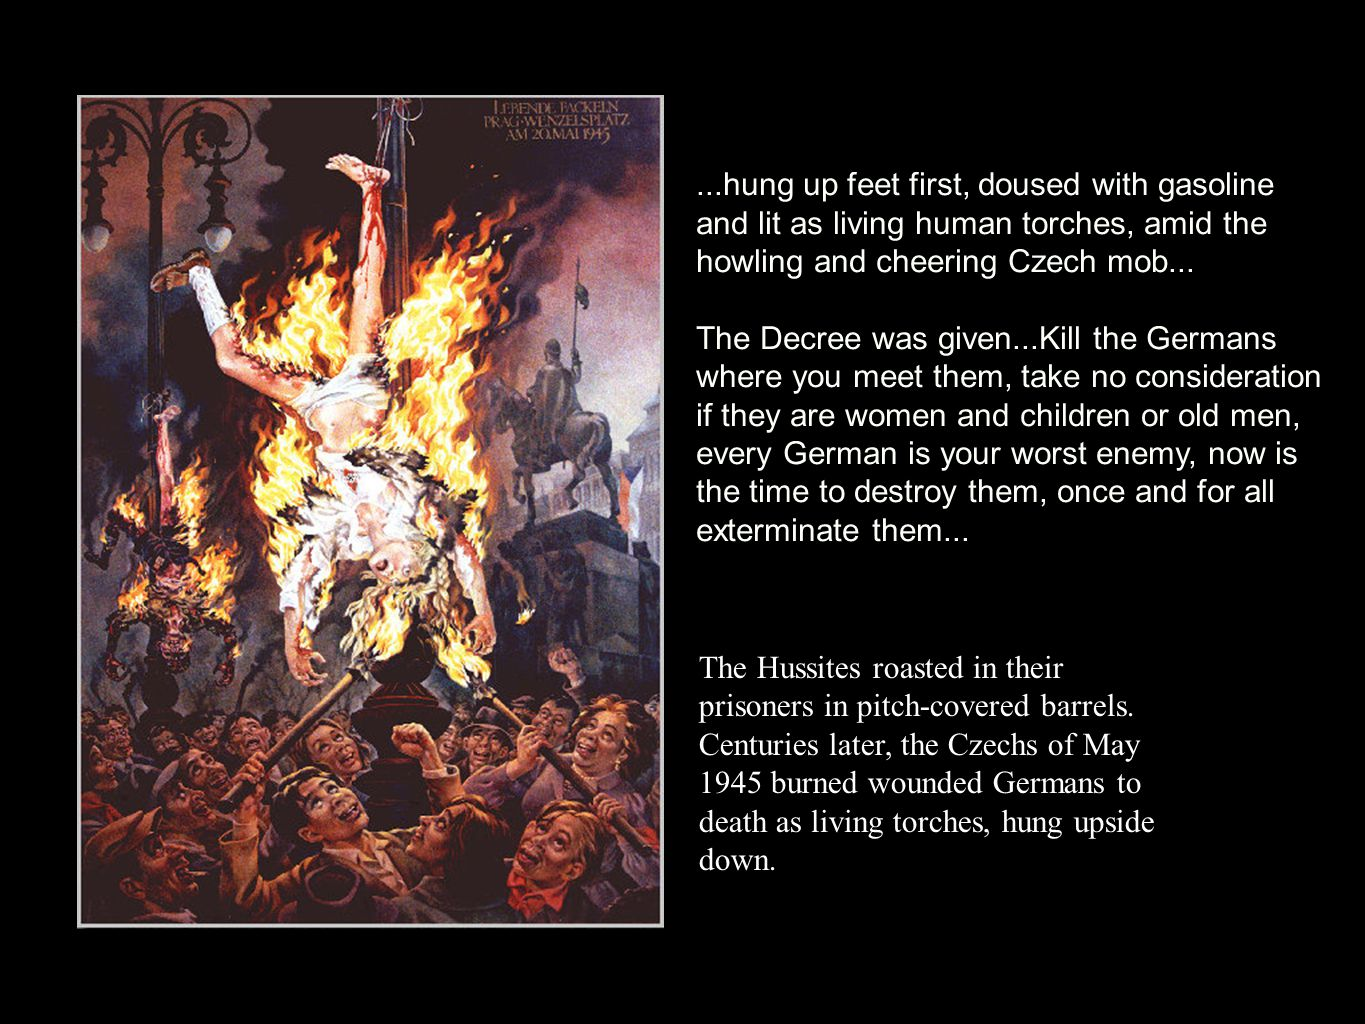 ...hung up feet first, doused with gasoline and lit as living human torches, amid the howling and cheering Czech mob...